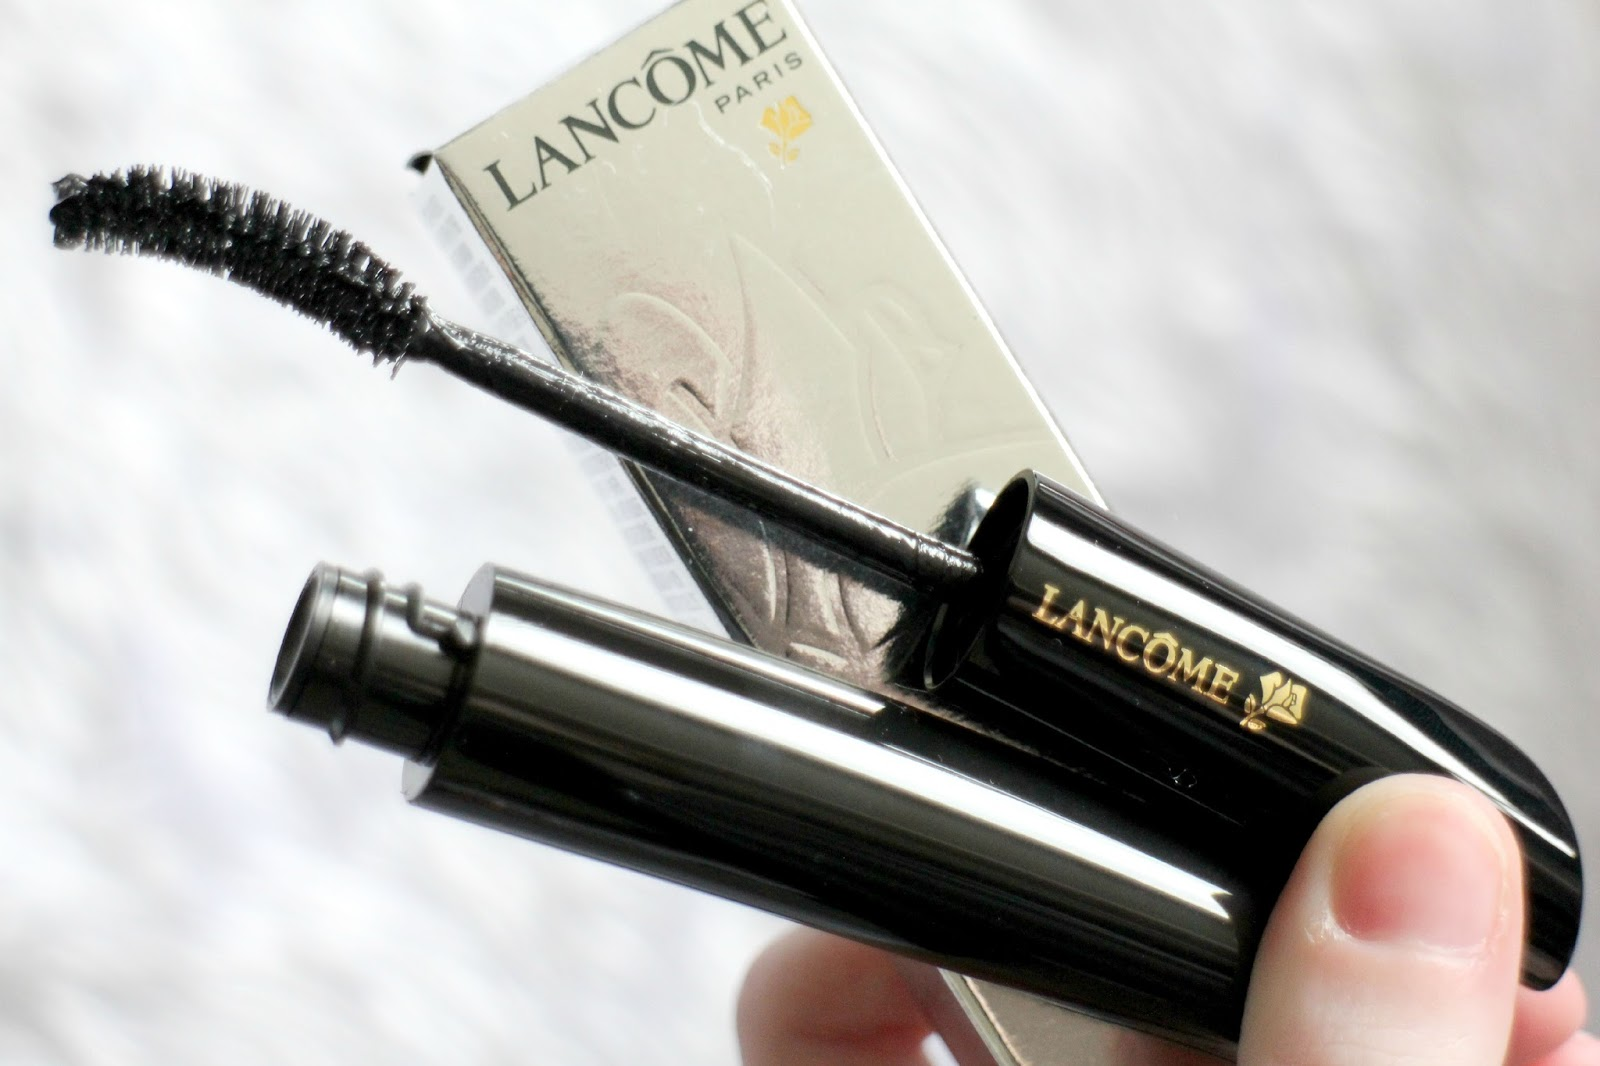 Lancome Virtuose Drama Mascara